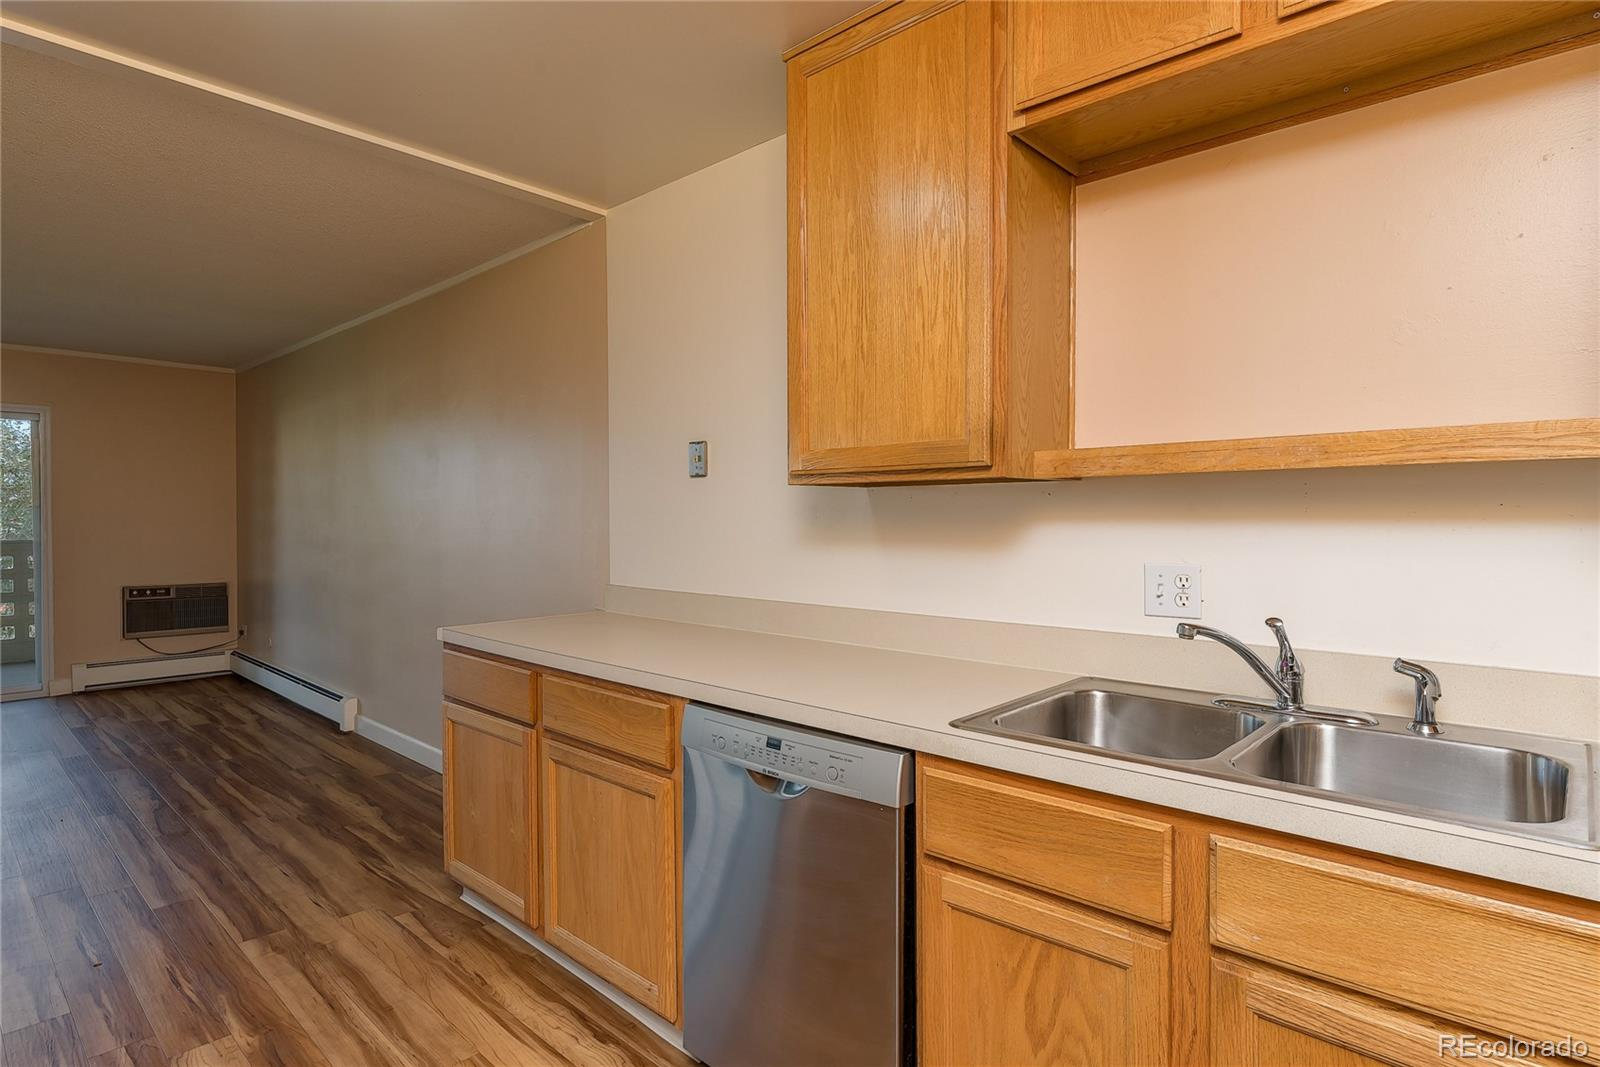 Remodeled and move right in to this 1200 sf, 2 bedroom, 2 bathroom, with underground parking! *Tour Windsor Gardens Online: Community tour, explore amenities and features, check out examples of interior walking/narrated condo video tours, and more:  go to www.tourwindsorgardens.com * Building is across the street from the clubhouse, and all the amenities. Condo location is on 2nd floor, same floor as the laundry room and bonus storage room. Kitchen features updated cabinets and stainless appliances. Coretec flooring thru-out, updated paint, baseboards, fixtures...new double pane slider door to lanai. 2 smart TV's included! 2 wall a/c units. Colorado's largest active adult living community, age 55+. FHA/VA approved. HOA Dues include annual property taxes! And also heat, water, sewer, trash, 24-hour patrolling community responder, club house w/indoor & outdoor pool, hot tub, sauna, activities...9 hole par 3 golf course open to the public.